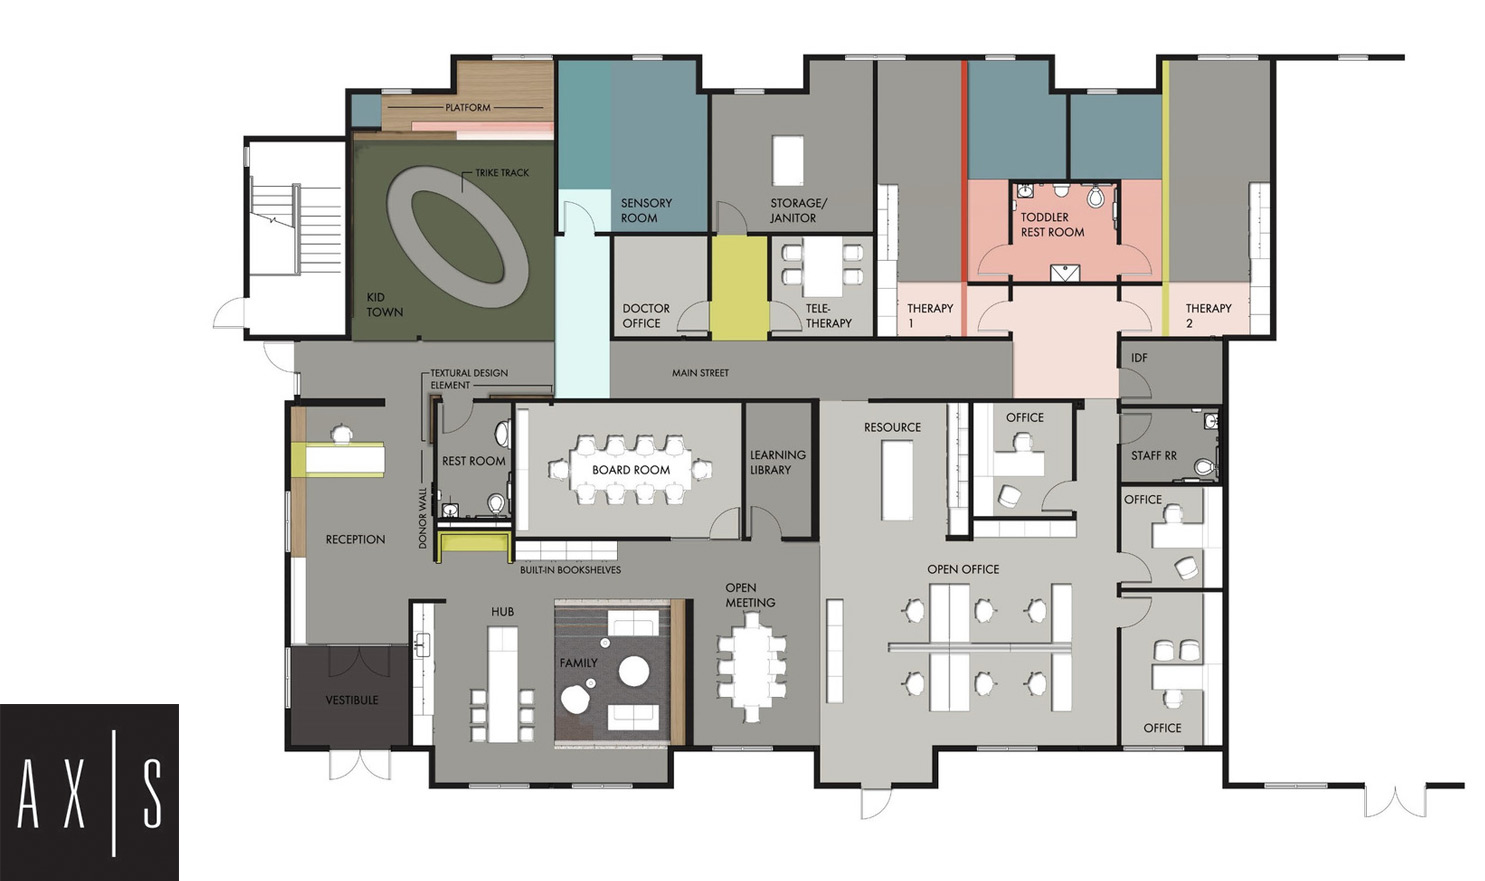 axis-floorplan